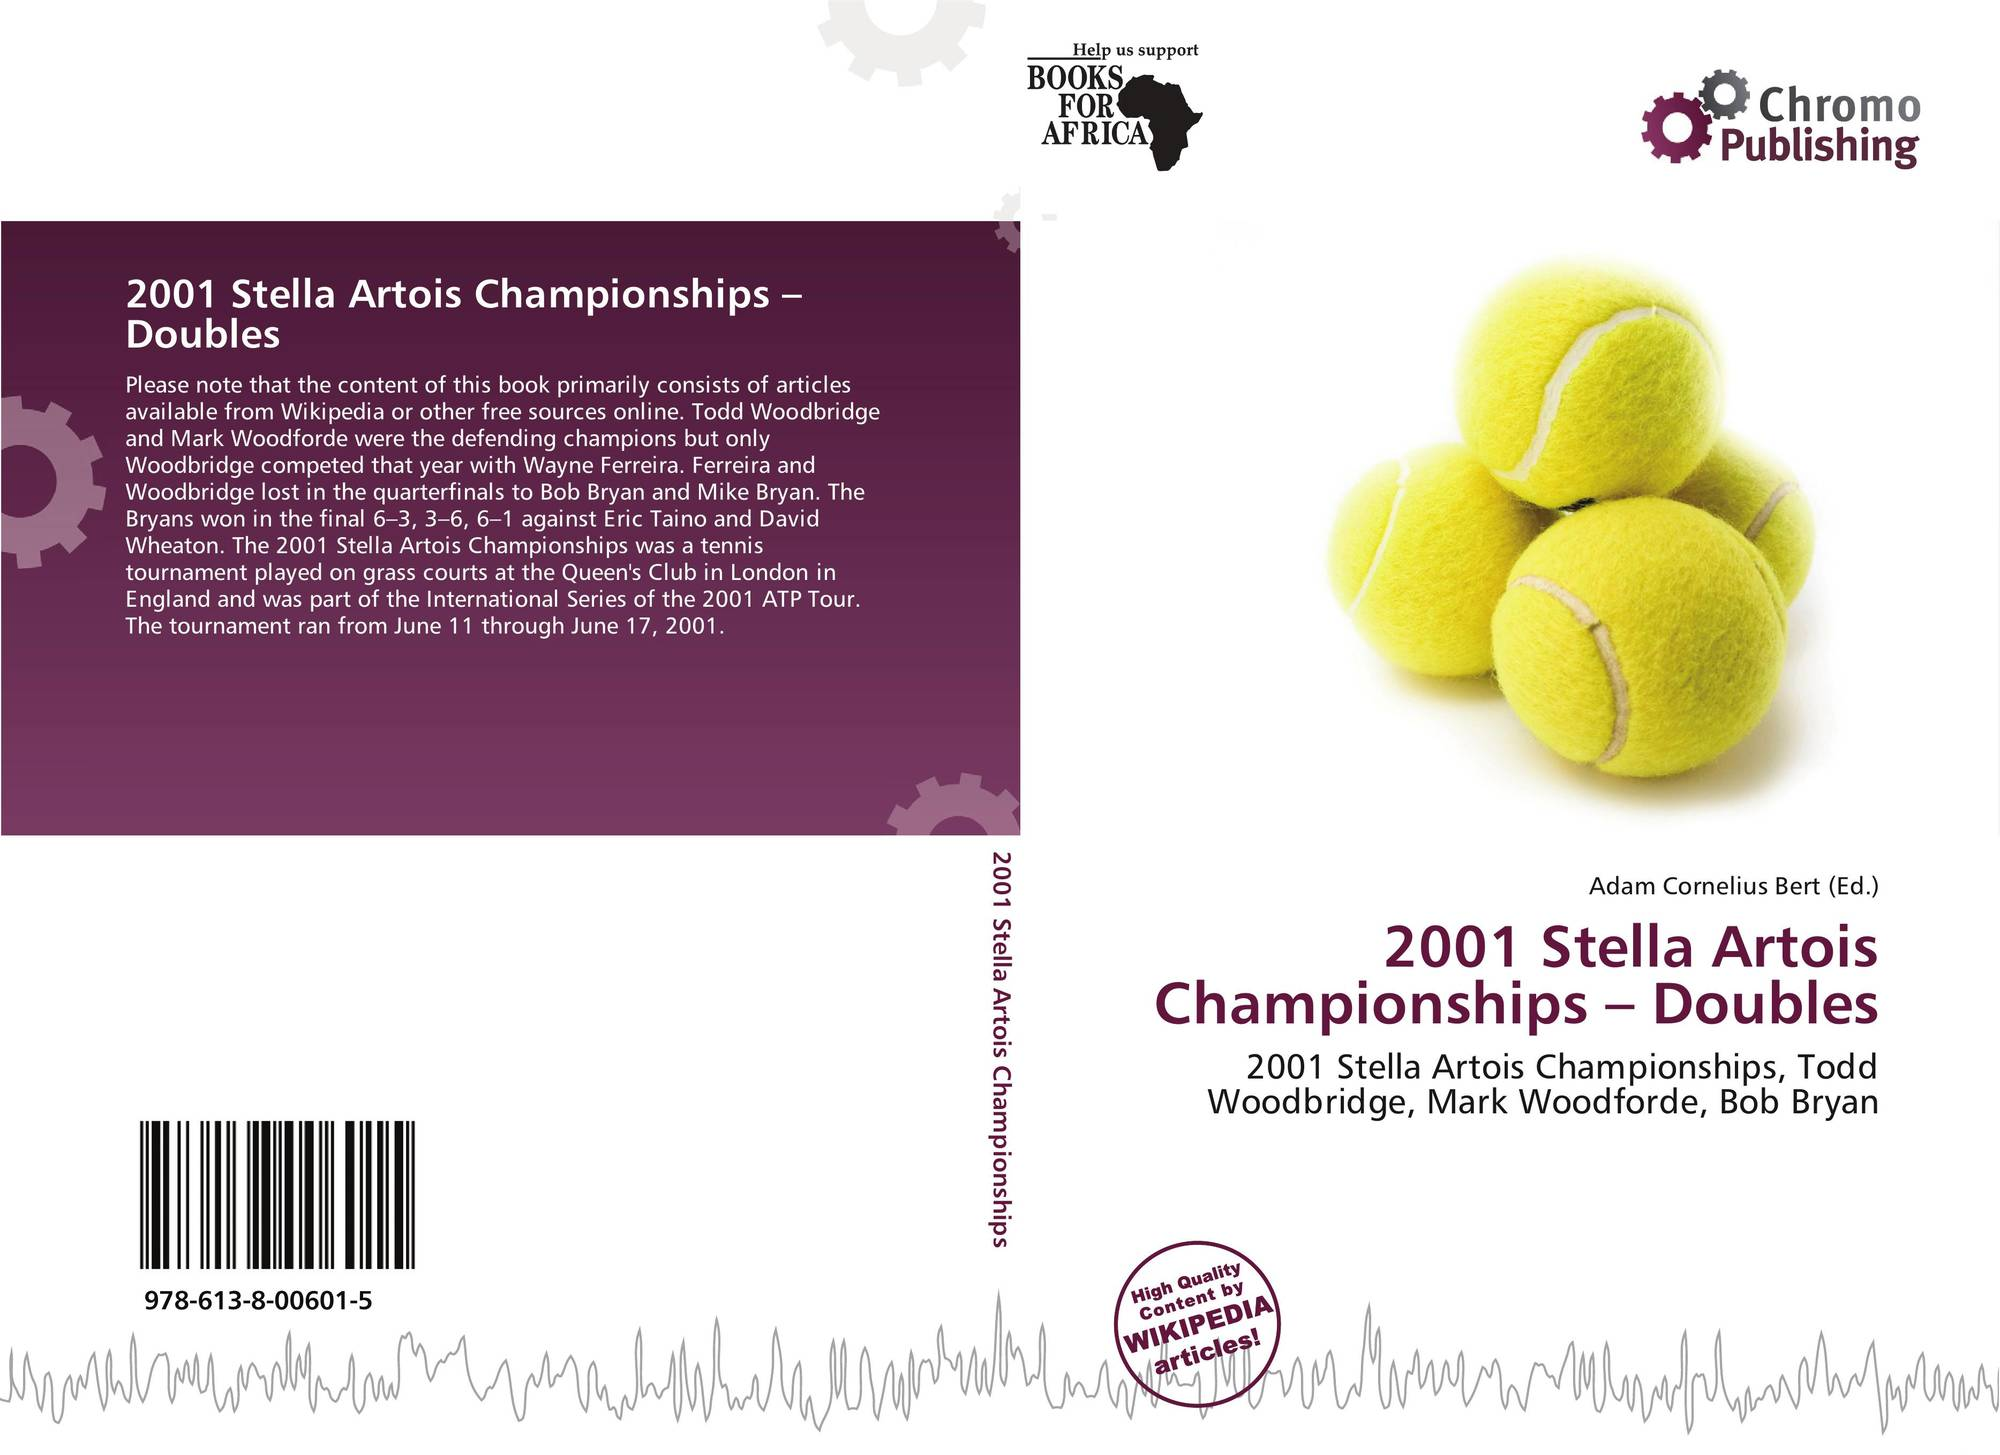 artois singles The queen's club championships is an annual tournament for male tennis  between 1979 and 2008 it was known as the stella artois championships,  men's singles.